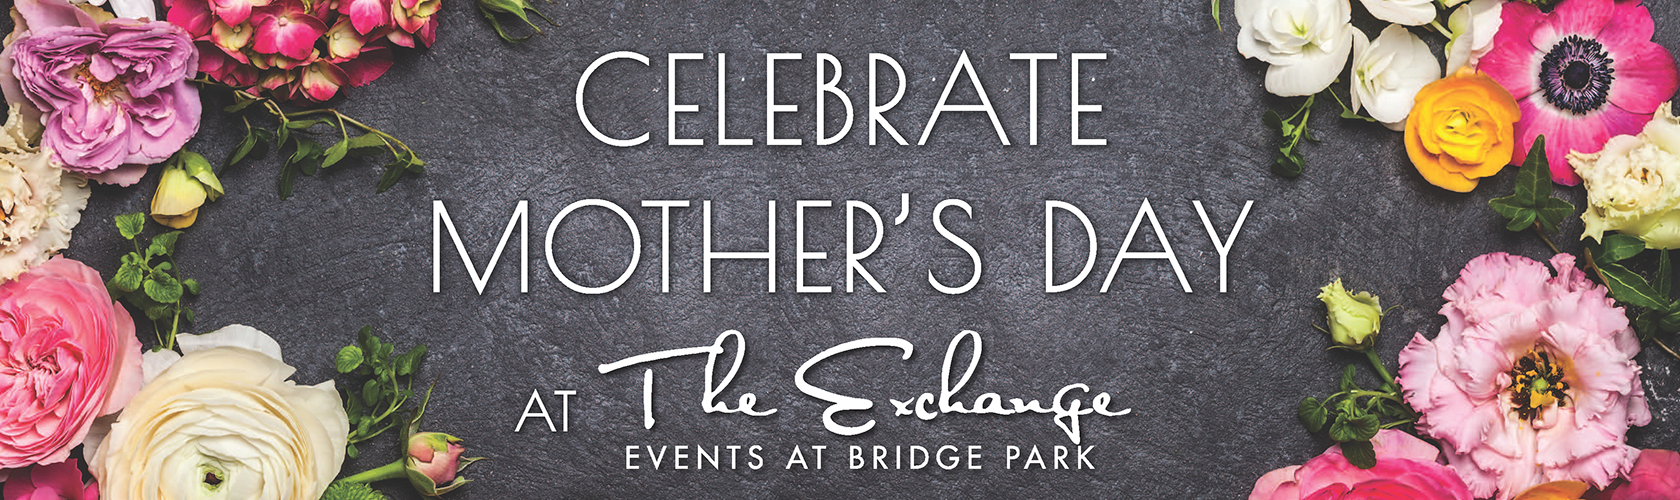 Celebrate Mother's Day at The Exchange Events at Bridge Park